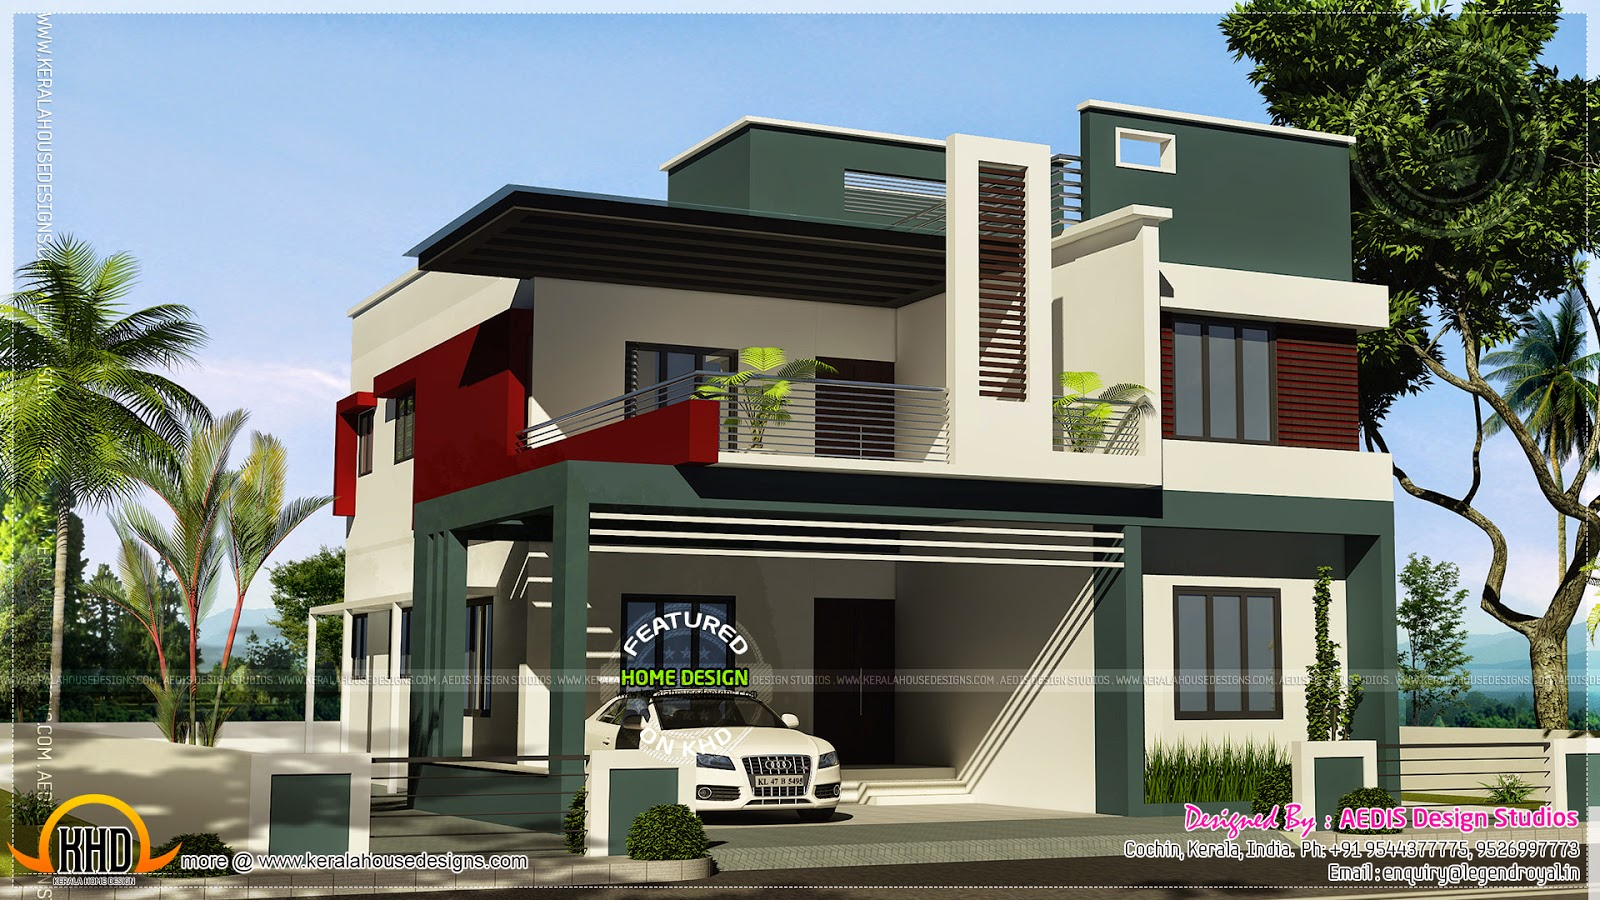 Duplex house contemporary style kerala home design and for Contemporary style homes in kerala